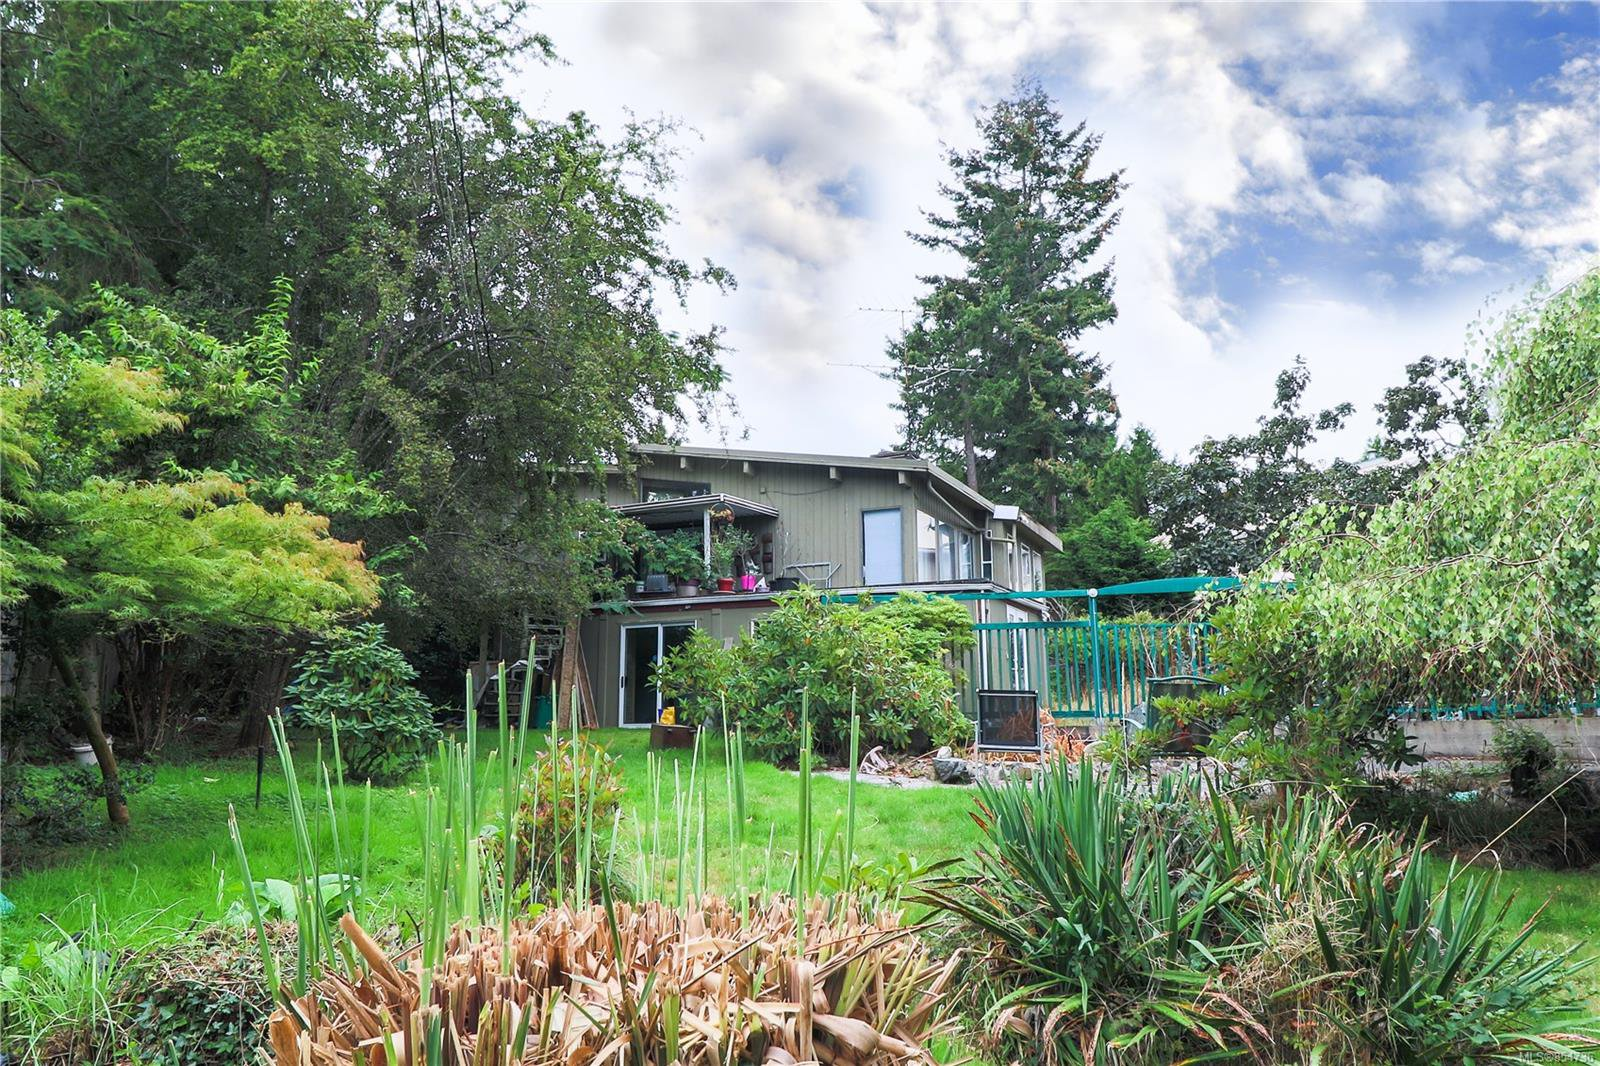 Main Photo: 1397 REEF Rd in : PQ Nanoose House for sale (Parksville/Qualicum)  : MLS®# 854736